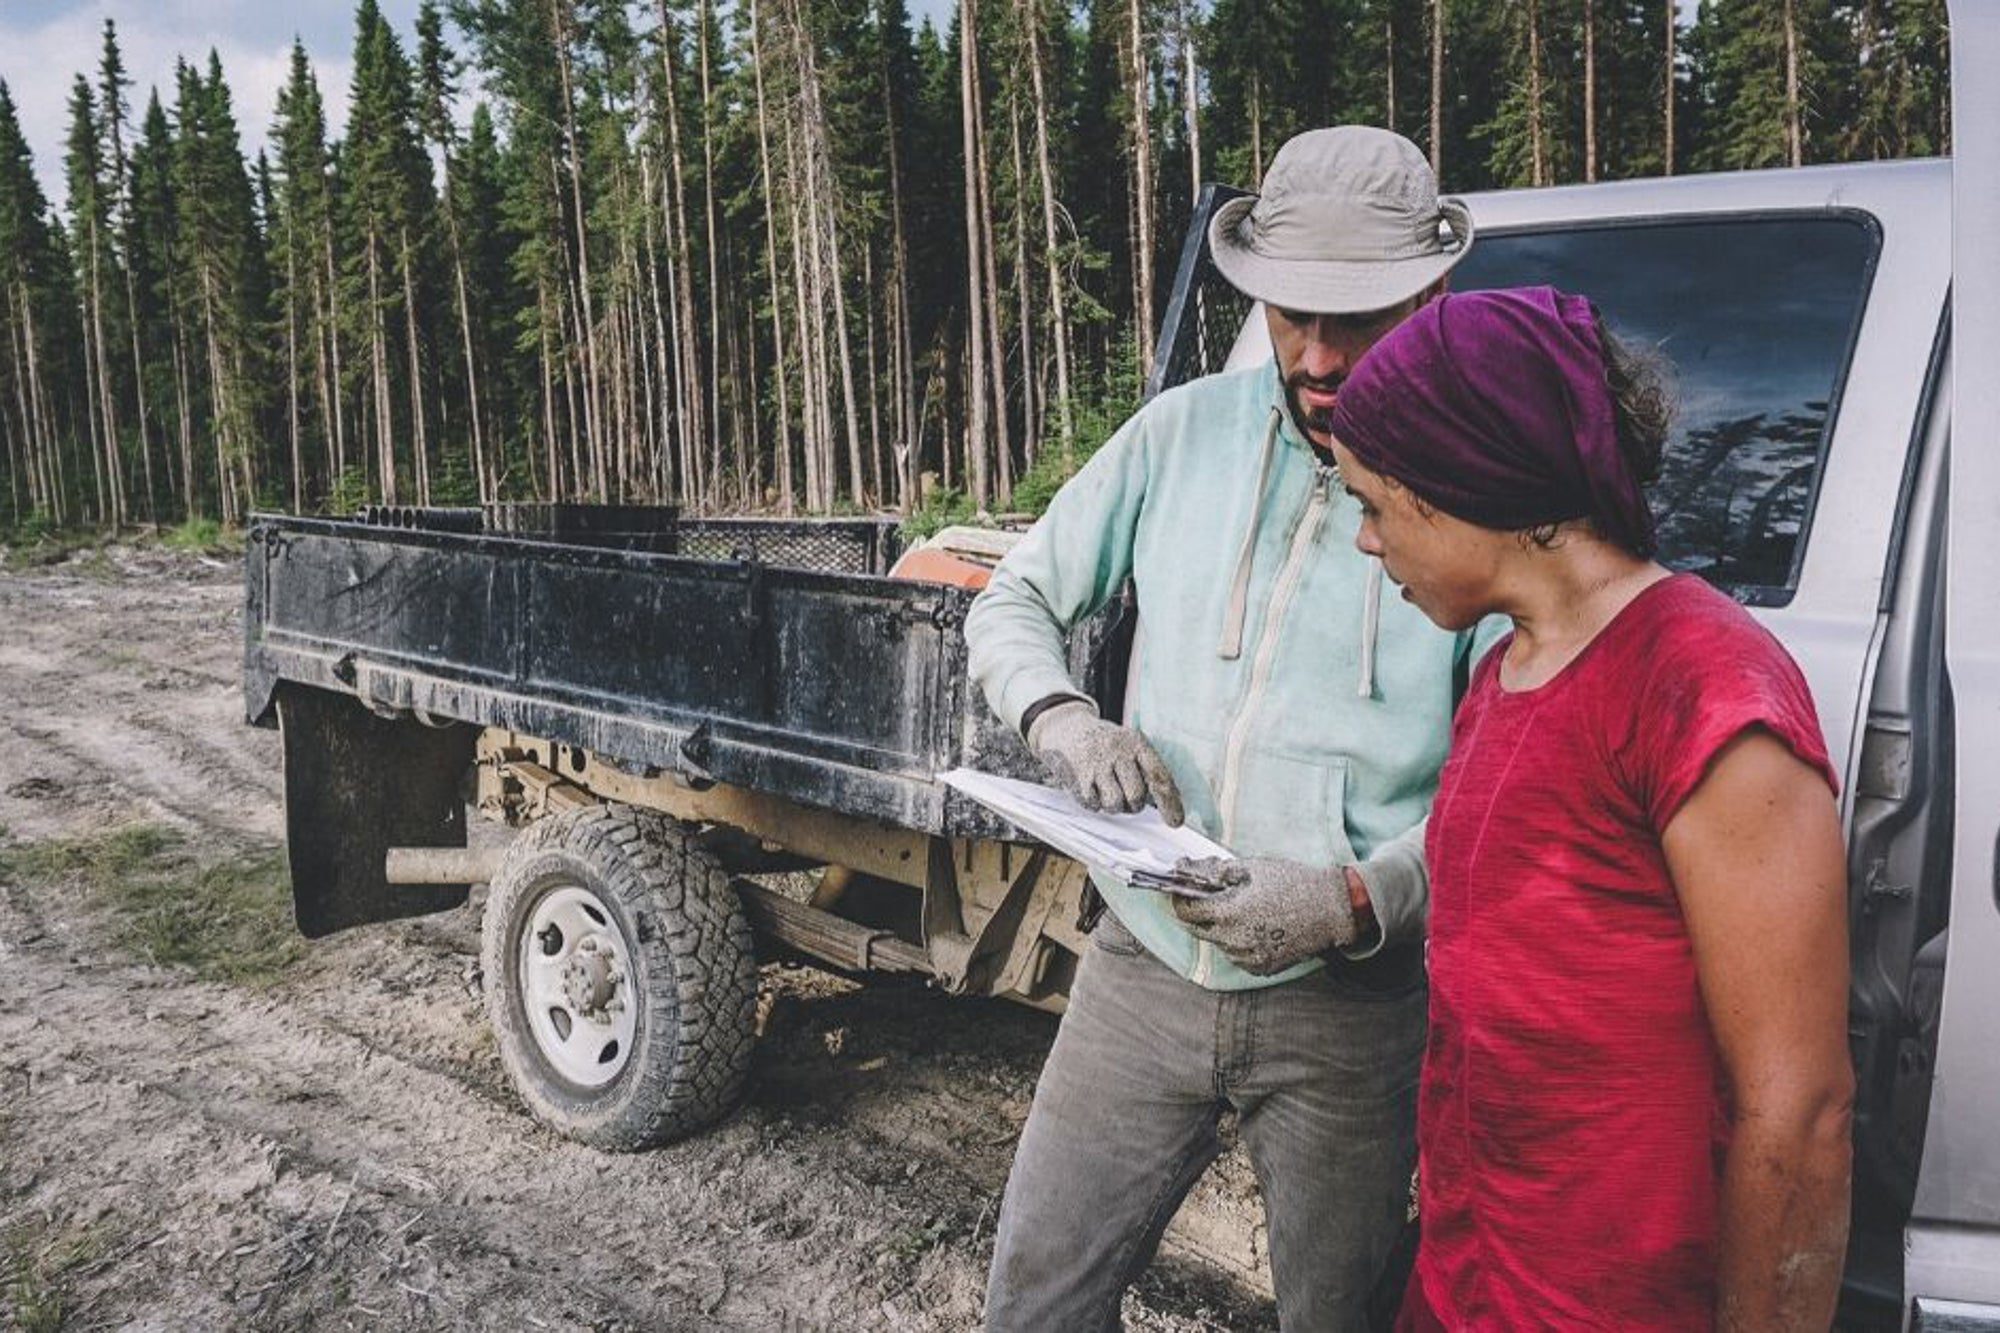 Pprofessional tree planters looking at plans in front of a truck with trees in the background